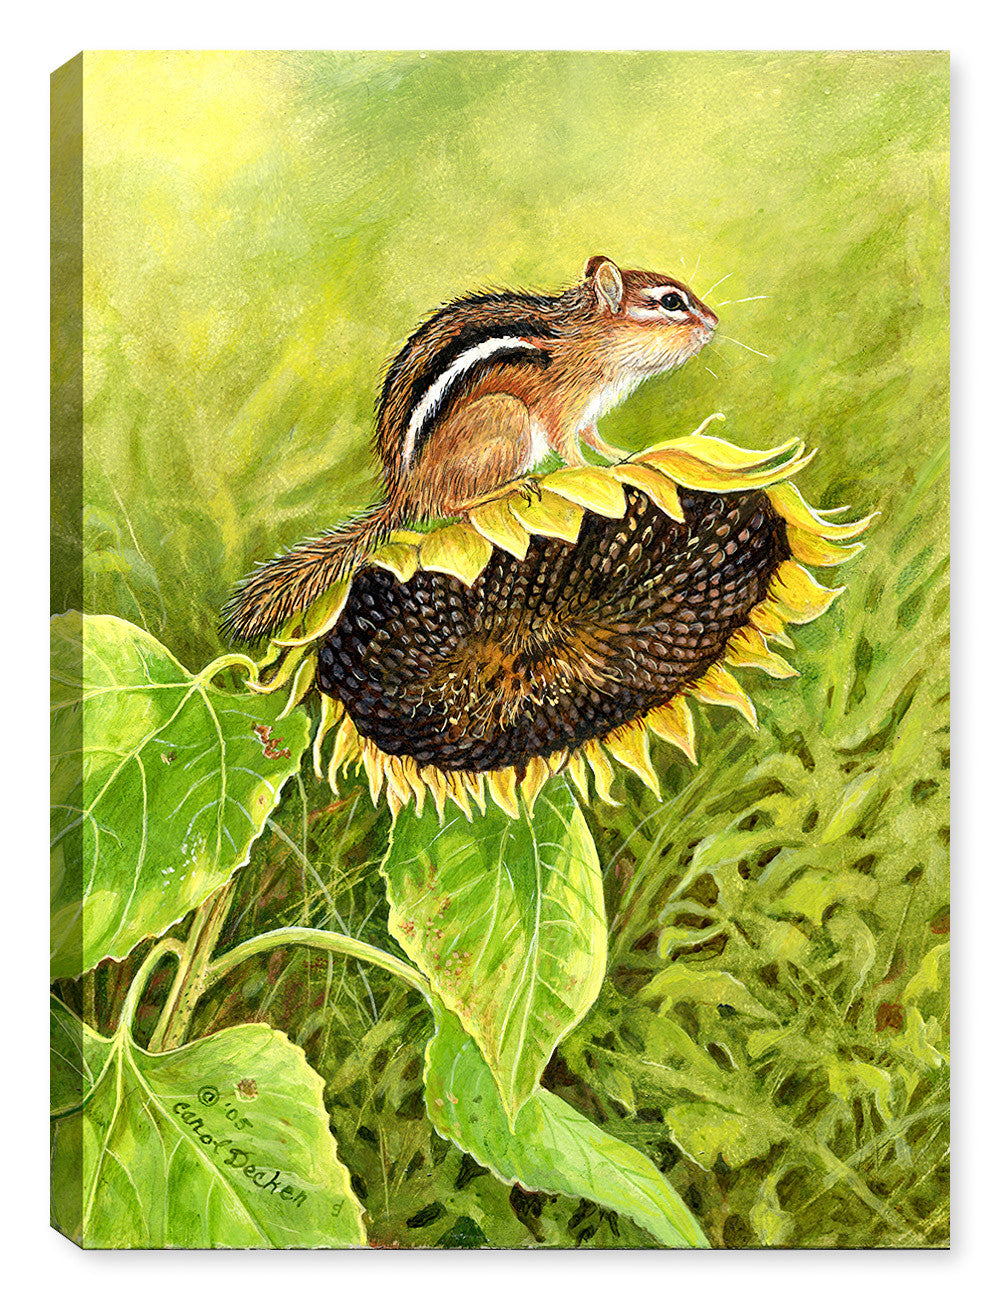 Chipmunk on Sunflower Painting by Carol Decker - Canvas Art Plus